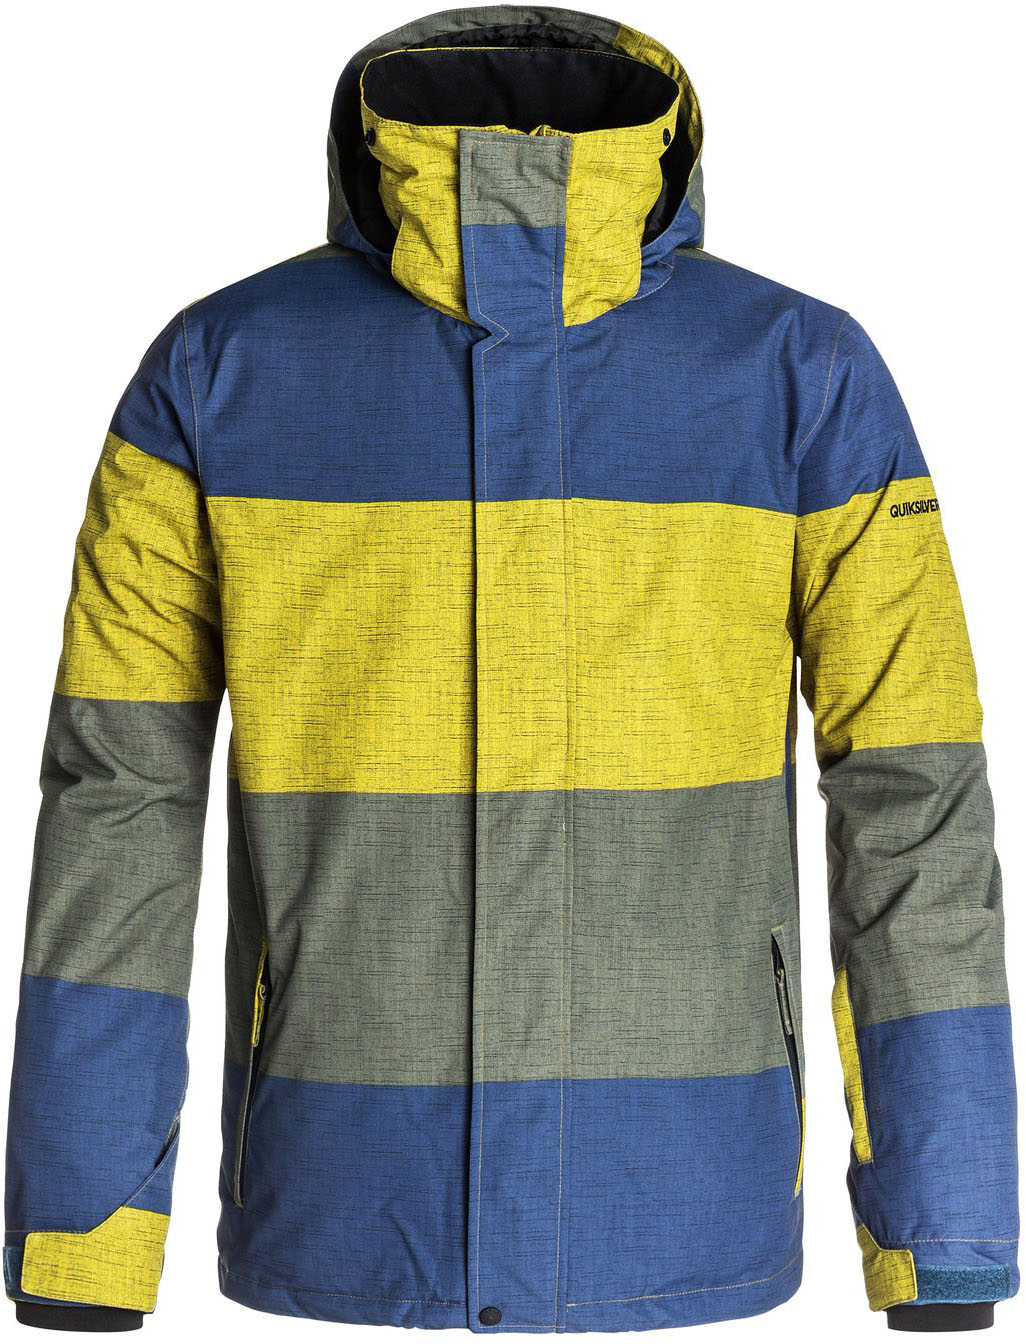 image quiksilver-mission-printed-shell-snwbrd-jkt-big-stripe-olive-oil-16-jpg